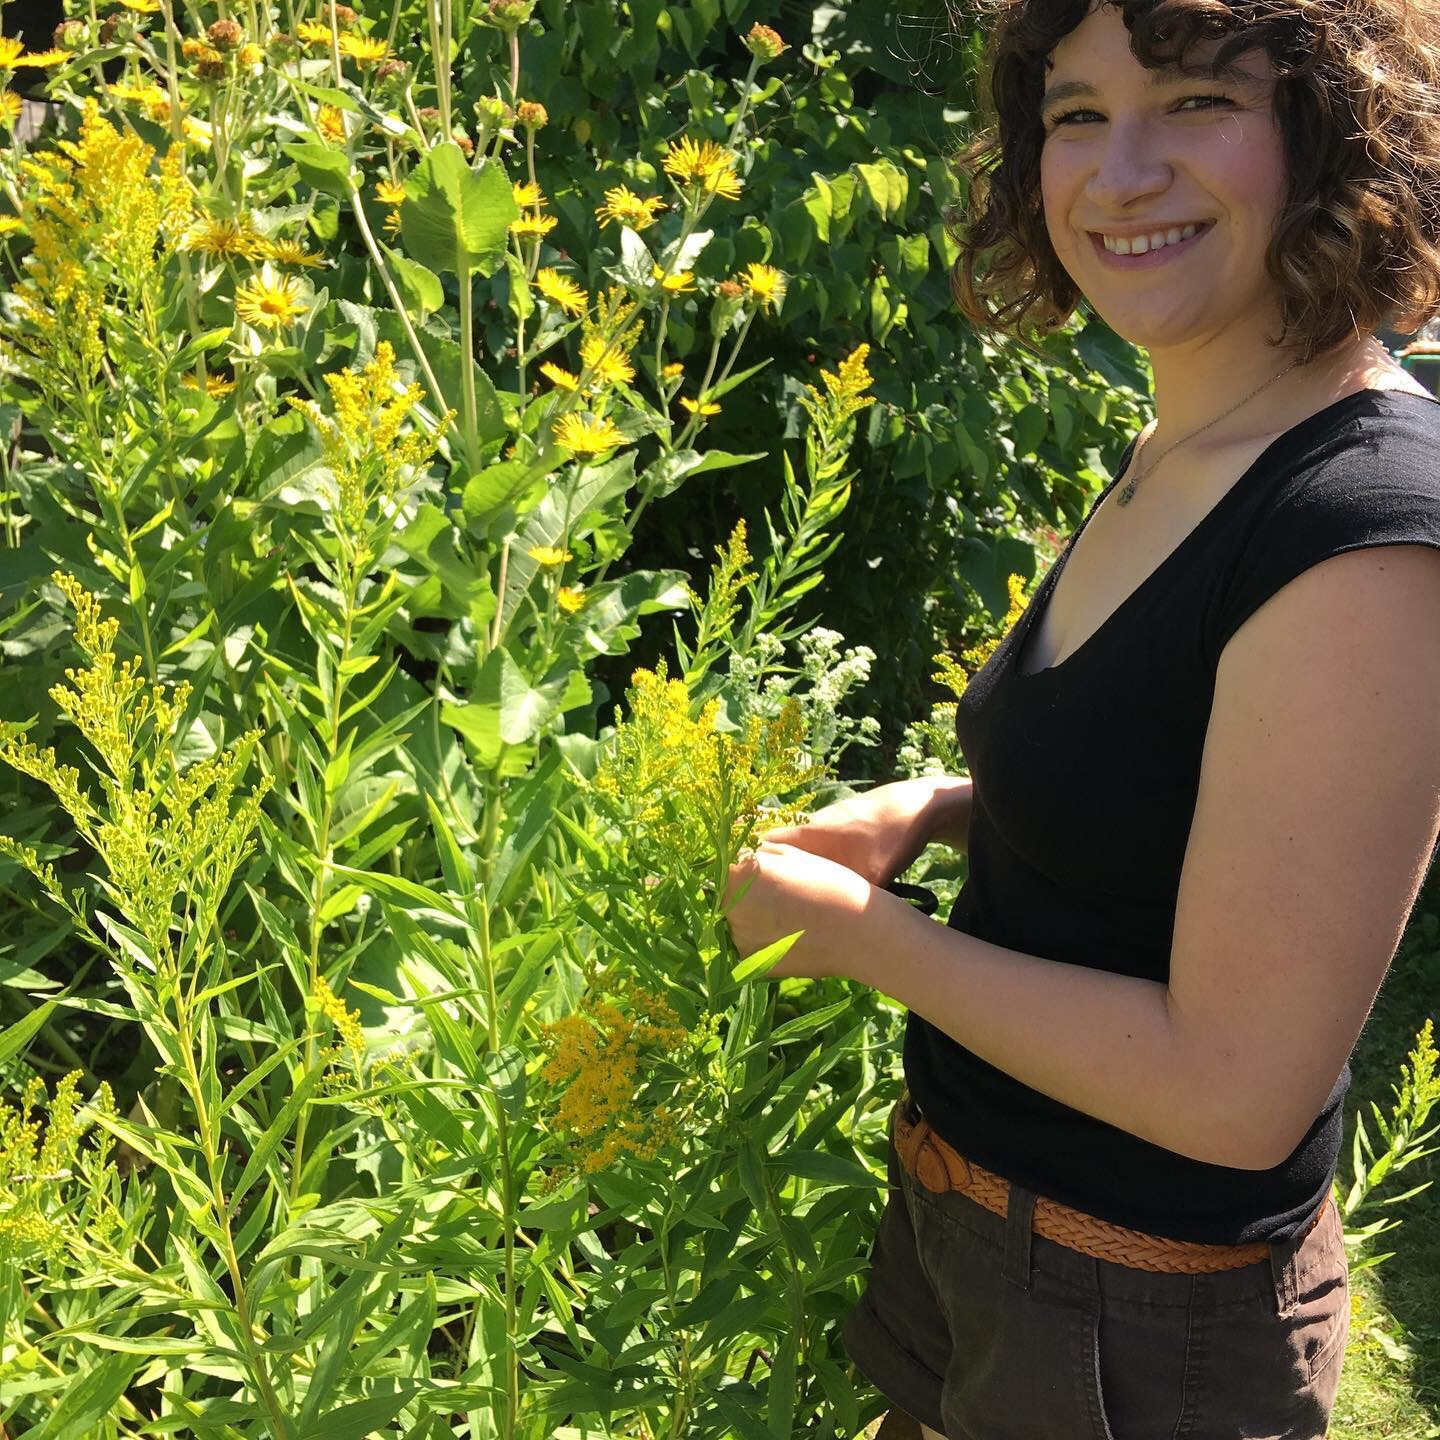 2020 IPMI Curriculum - This comprehensive training in herbal medicine is offered yearly beginning in March. One weekend a month for nine months allow students to observe plants in all stages of growth. Plant identification, harvest protocols, Apothecary and medicine making studies. Registration opens October 2019. Class size is limited.